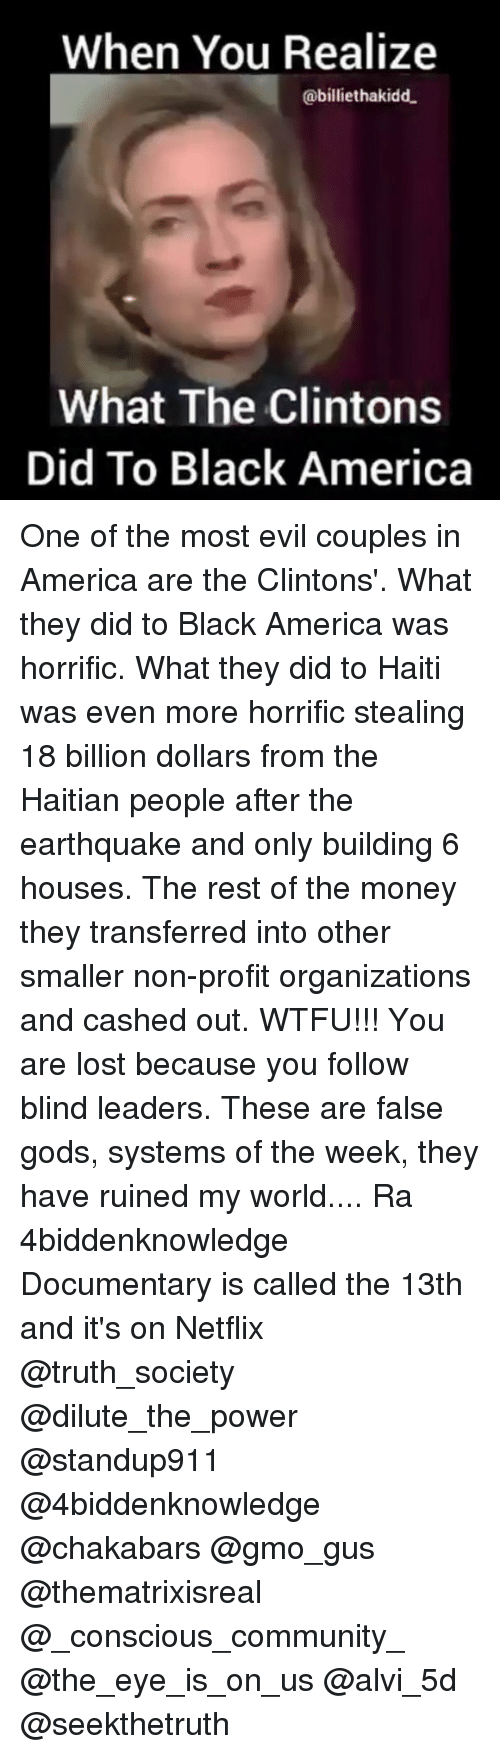 18 Billion: When You Realize  abilliethakidd.  What The Clintons  Did To Black America One of the most evil couples in America are the Clintons'. What they did to Black America was horrific. What they did to Haiti was even more horrific stealing 18 billion dollars from the Haitian people after the earthquake and only building 6 houses. The rest of the money they transferred into other smaller non-profit organizations and cashed out. WTFU!!! You are lost because you follow blind leaders. These are false gods, systems of the week, they have ruined my world.... Ra 4biddenknowledge Documentary is called the 13th and it's on Netflix @truth_society @dilute_the_power @standup911 @4biddenknowledge @chakabars @gmo_gus @thematrixisreal @_conscious_community_ @the_eye_is_on_us @alvi_5d @seekthetruth